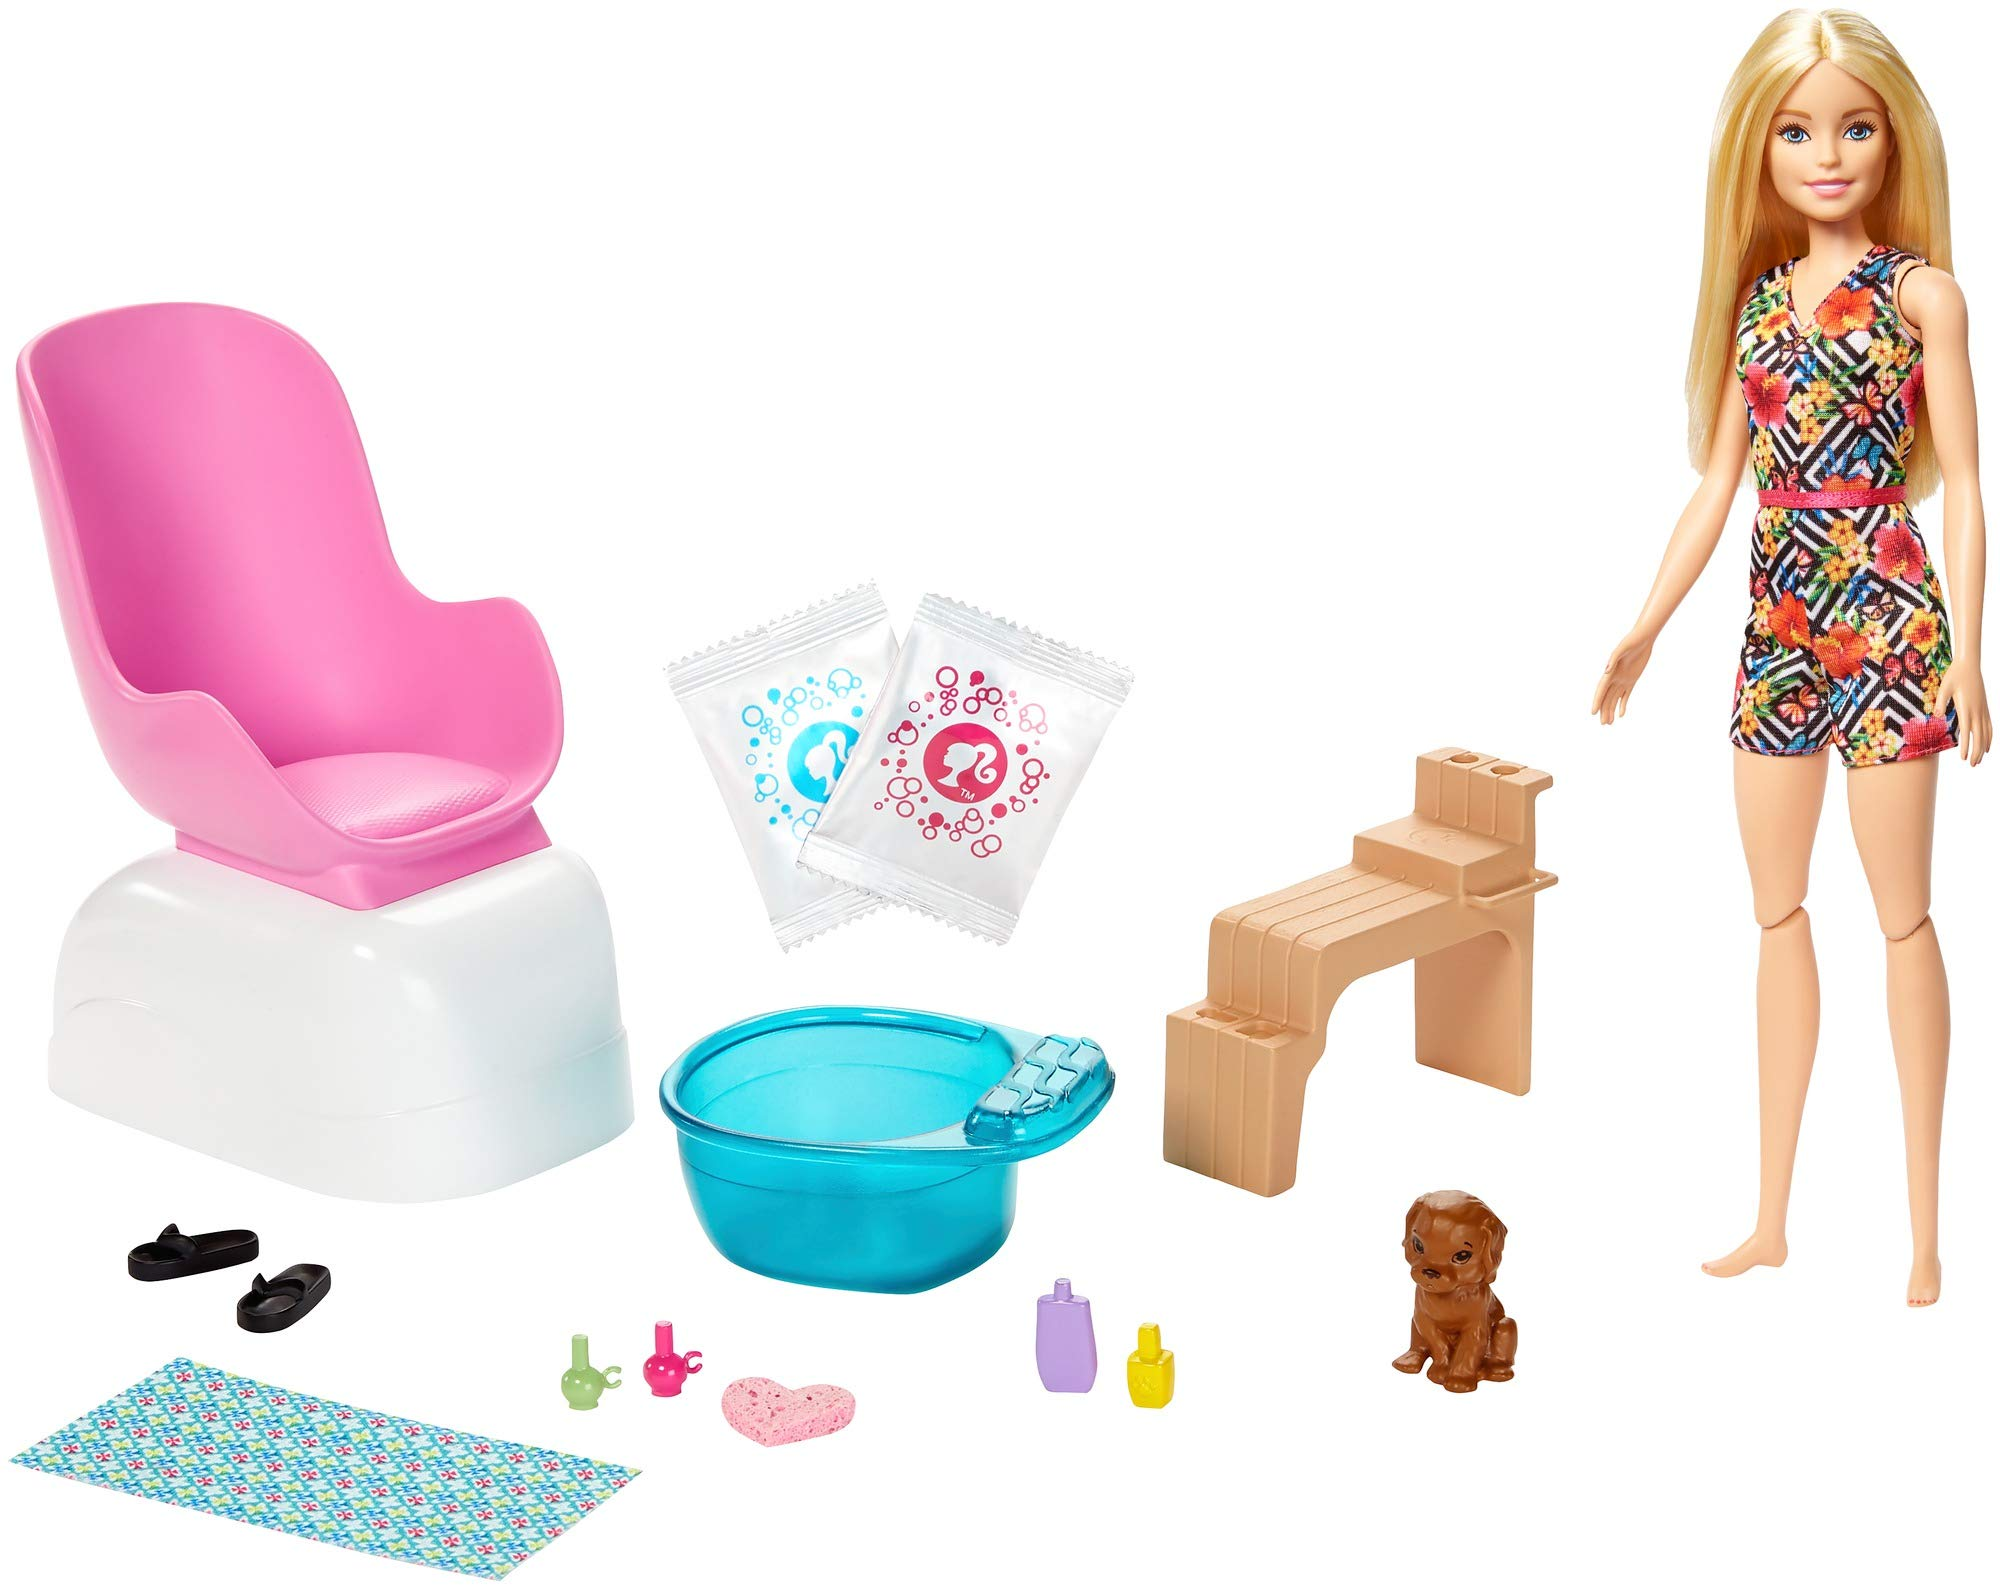 Barbie Mani-Pedi Spa Playset with Blonde Doll, Puppy, Foot Spa & Accessories, 2 Fizzy Packs Create Foaming Foot Bath, Color-Change on Doll's Nails, Gift for Kids 3 to 7 Years Old